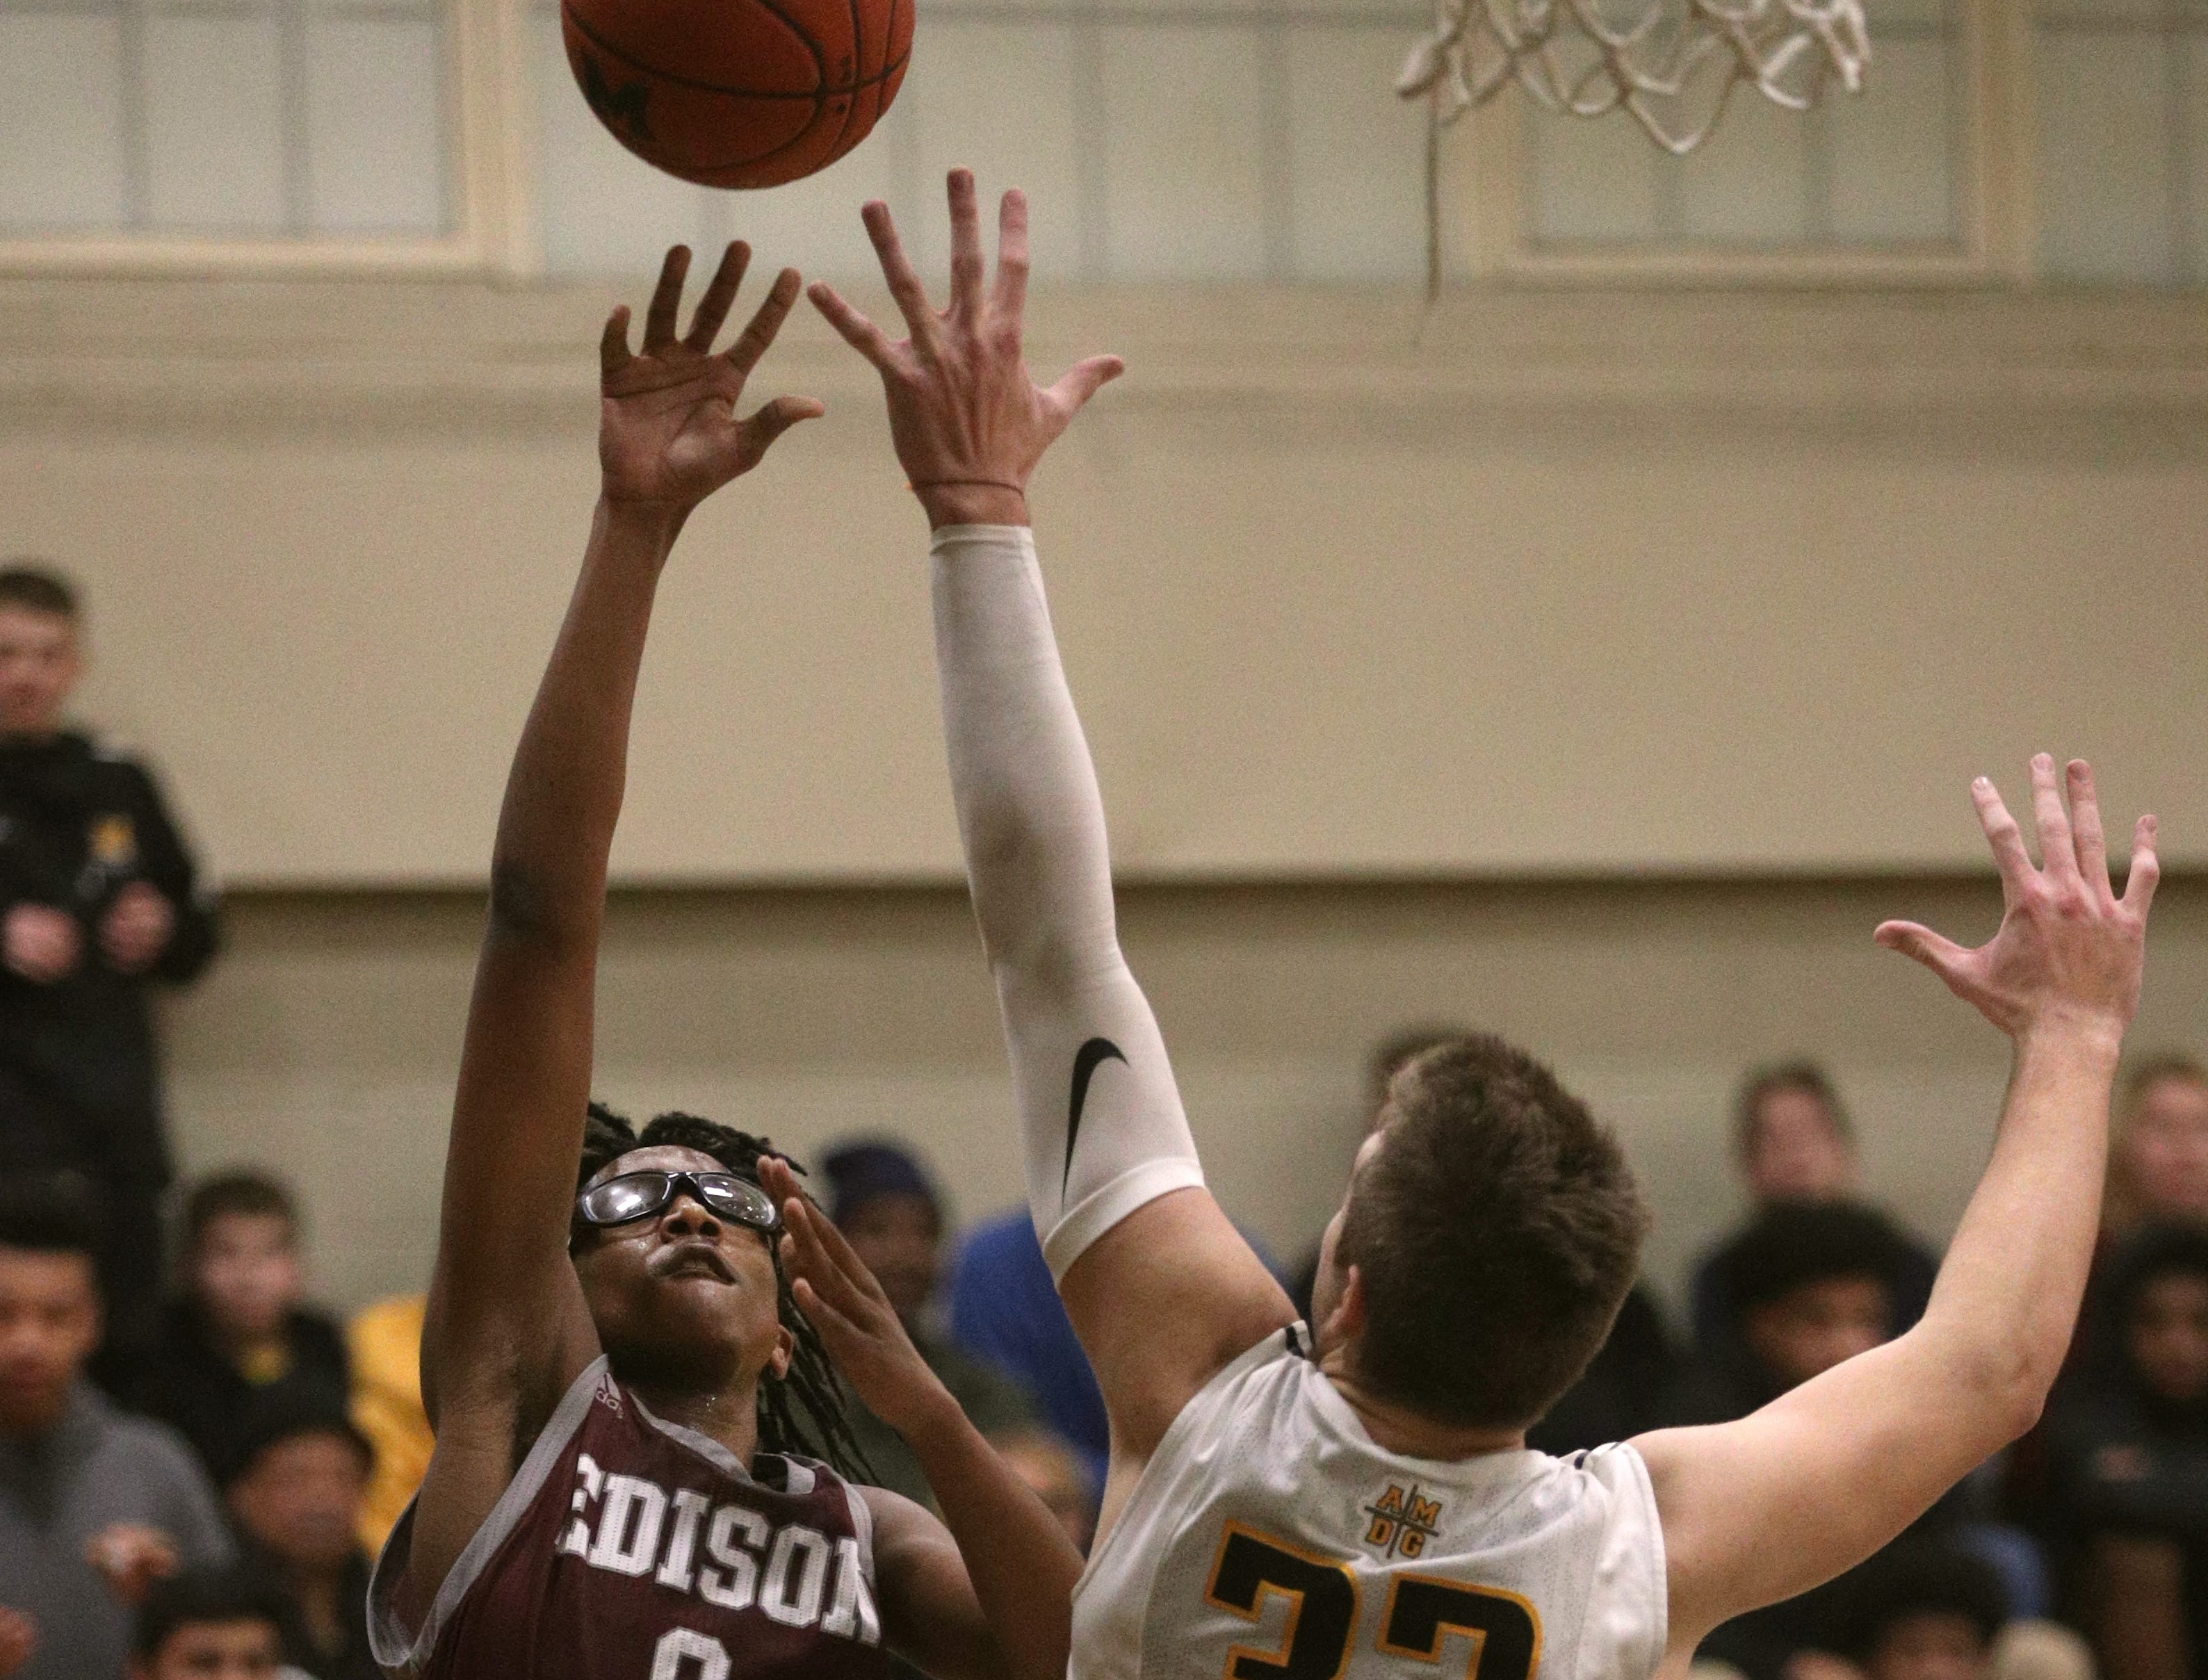 Edison's Jawaun Holt (0) lofts a shot over McQuaid's Connor Zamiara.